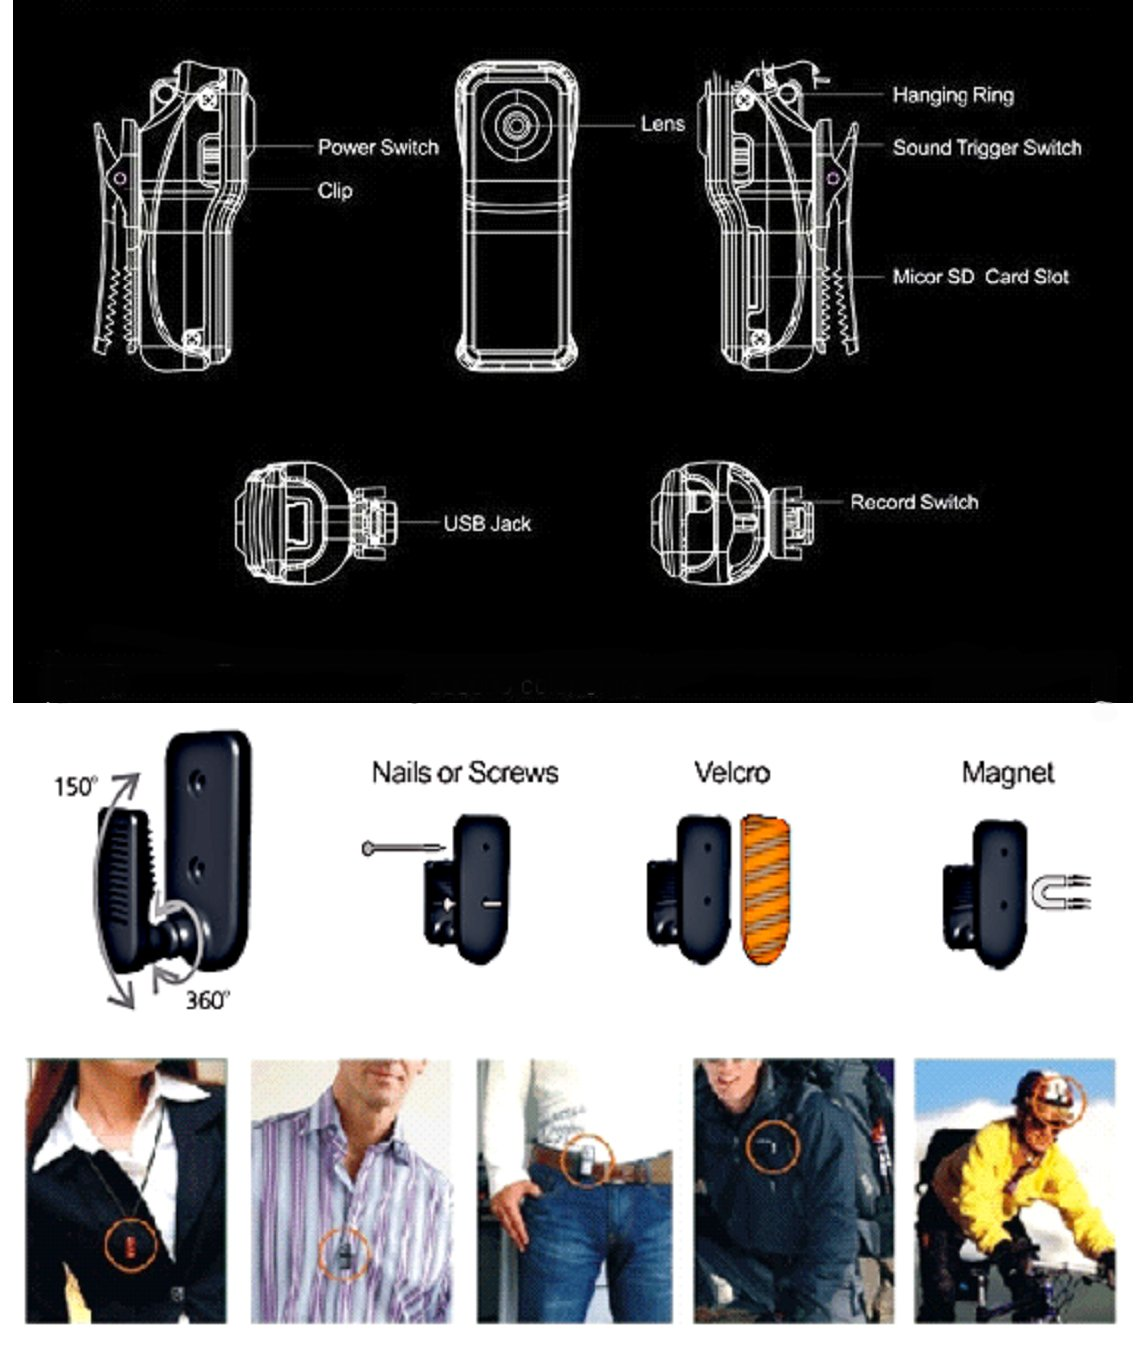 SecuVox Sound Activated Thumb Size Camcorder with Belt Clip Kits